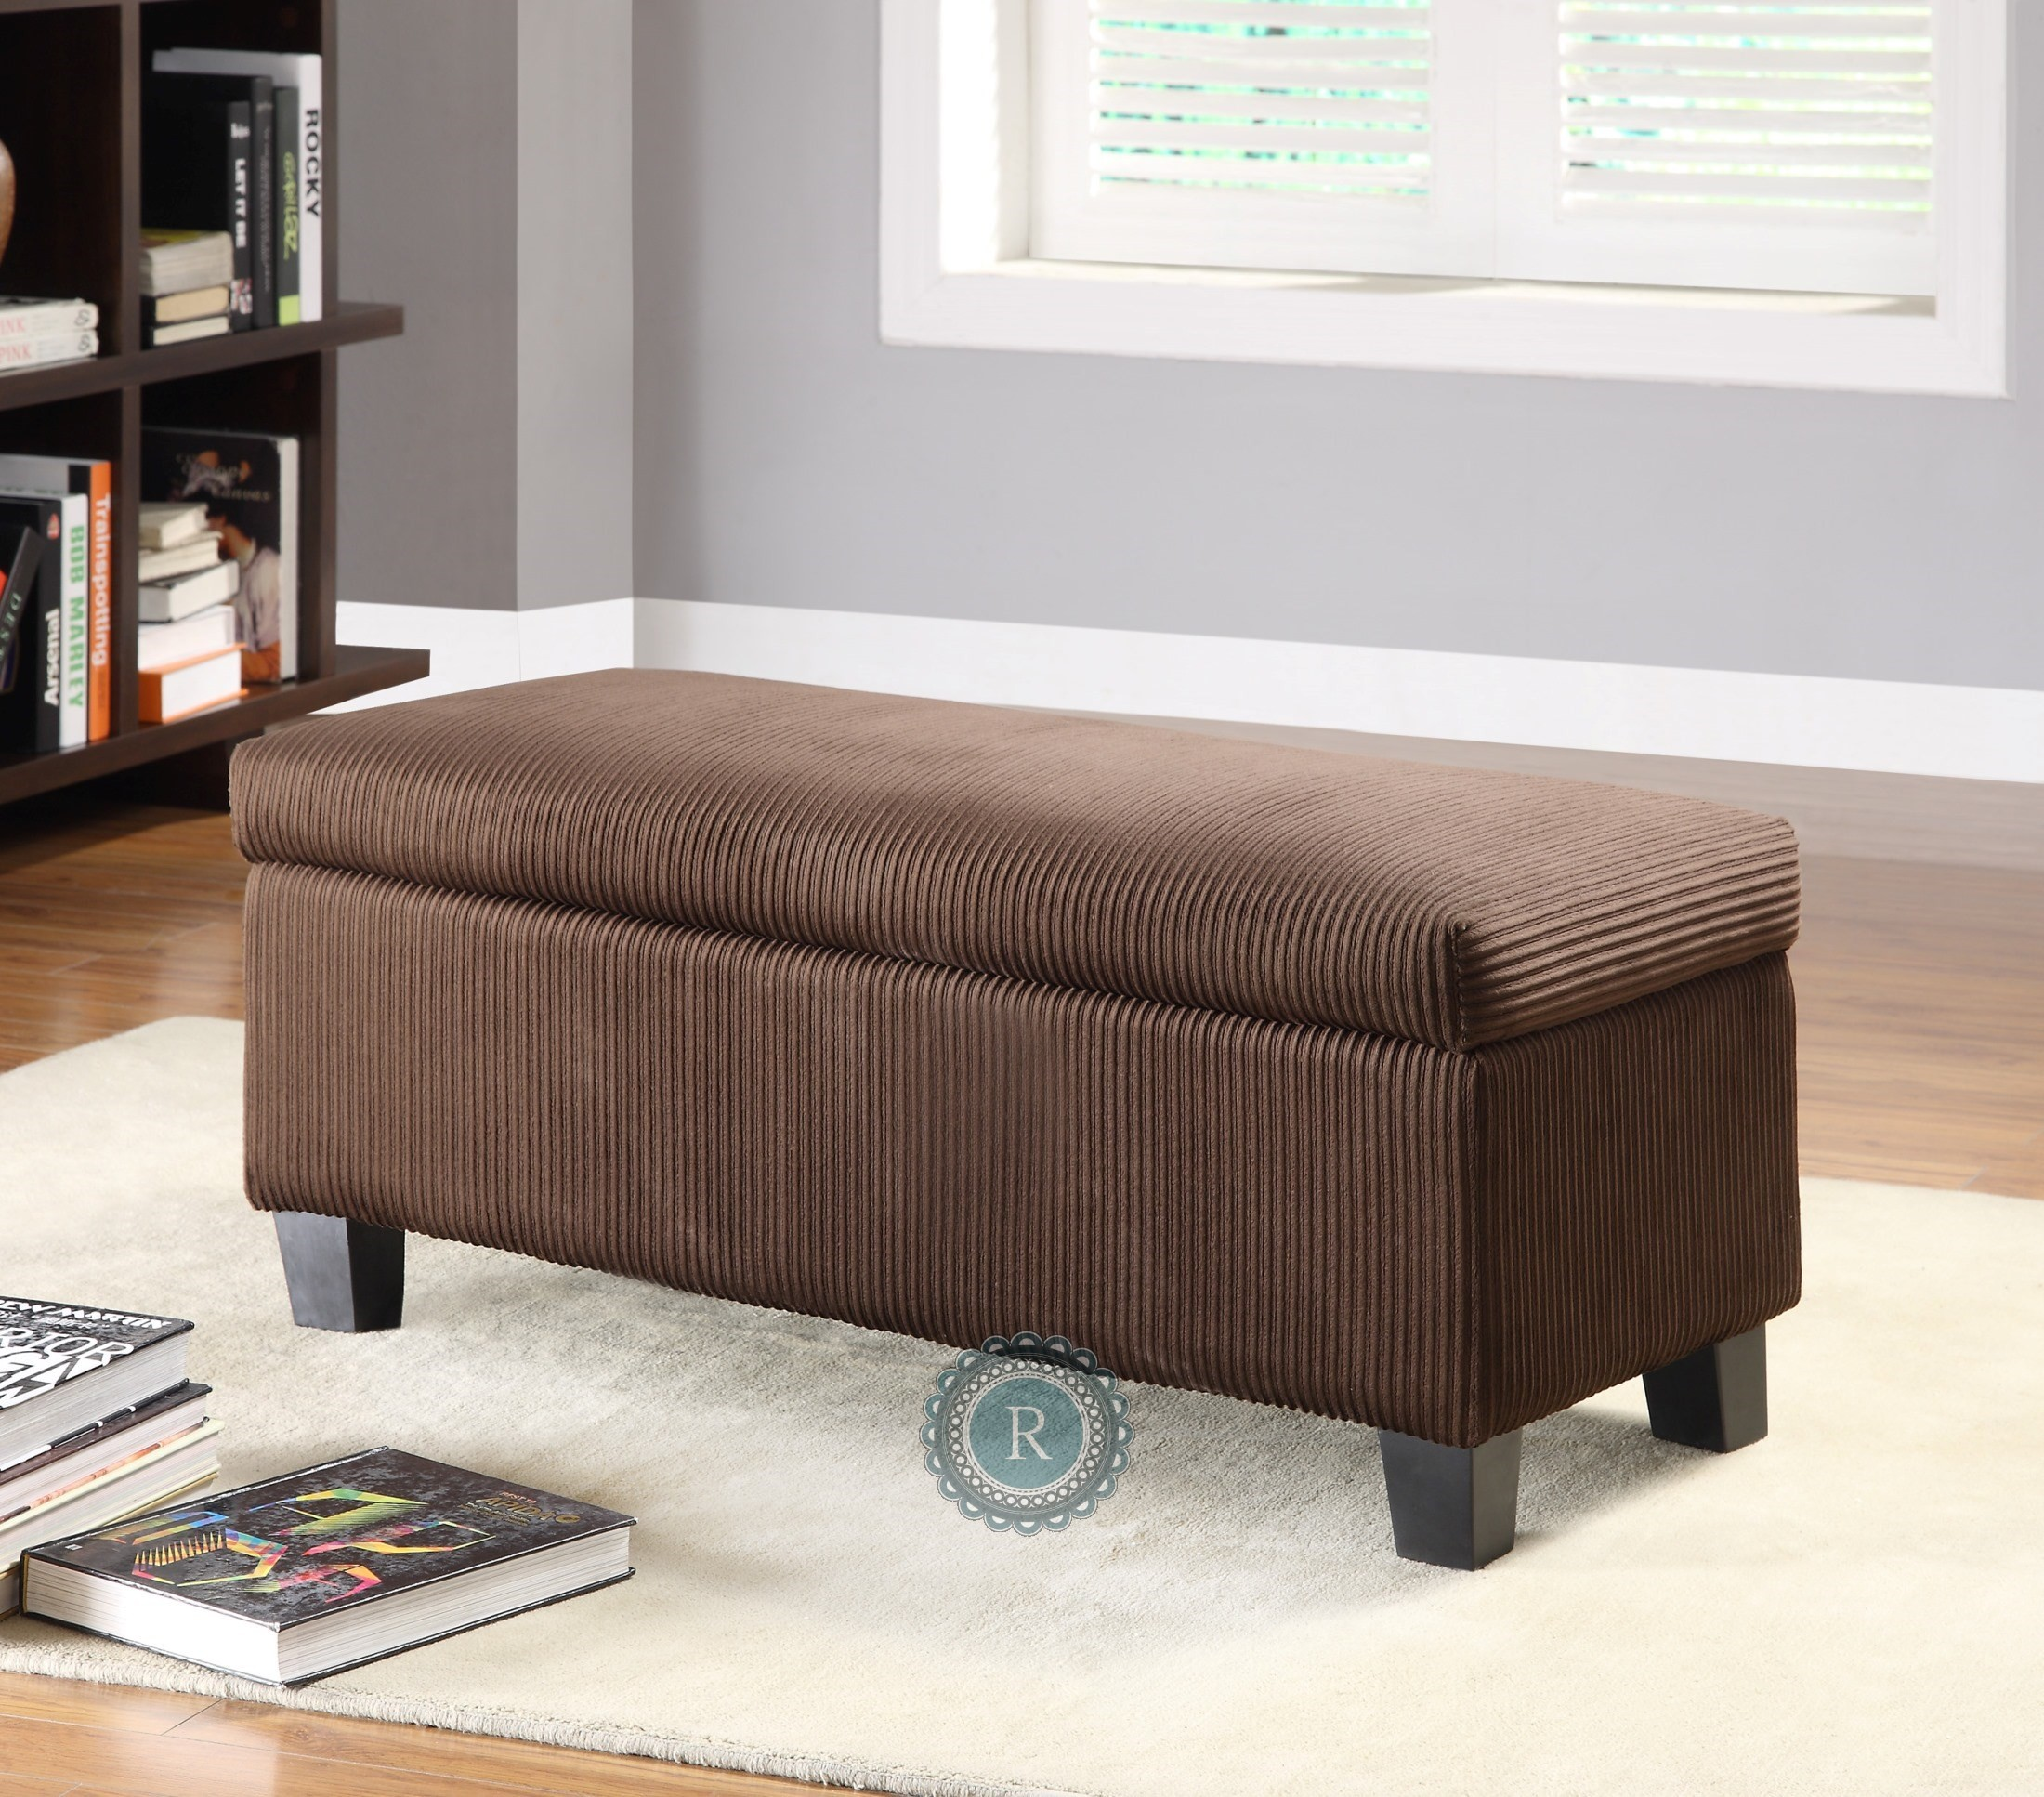 Claire Contemporary Lift Top Storage Bench From